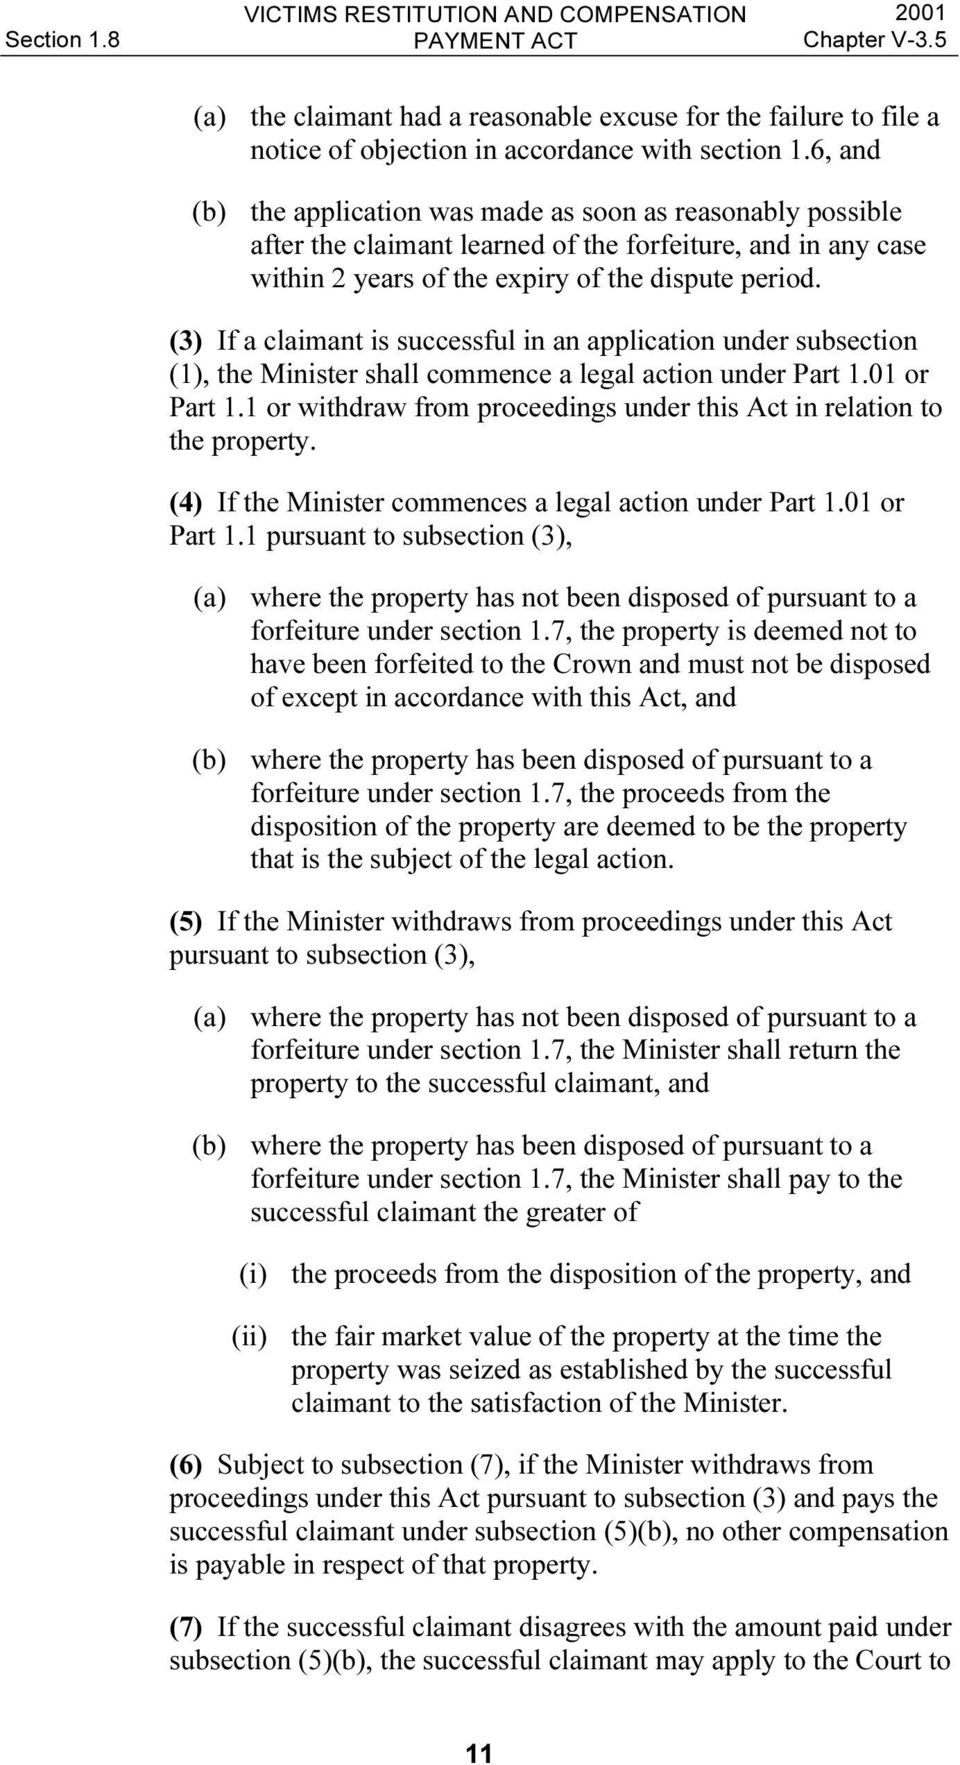 (3) If a claimant is successful in an application under subsection (1), the Minister shall commence a legal action under Part 1.01 or Part 1.